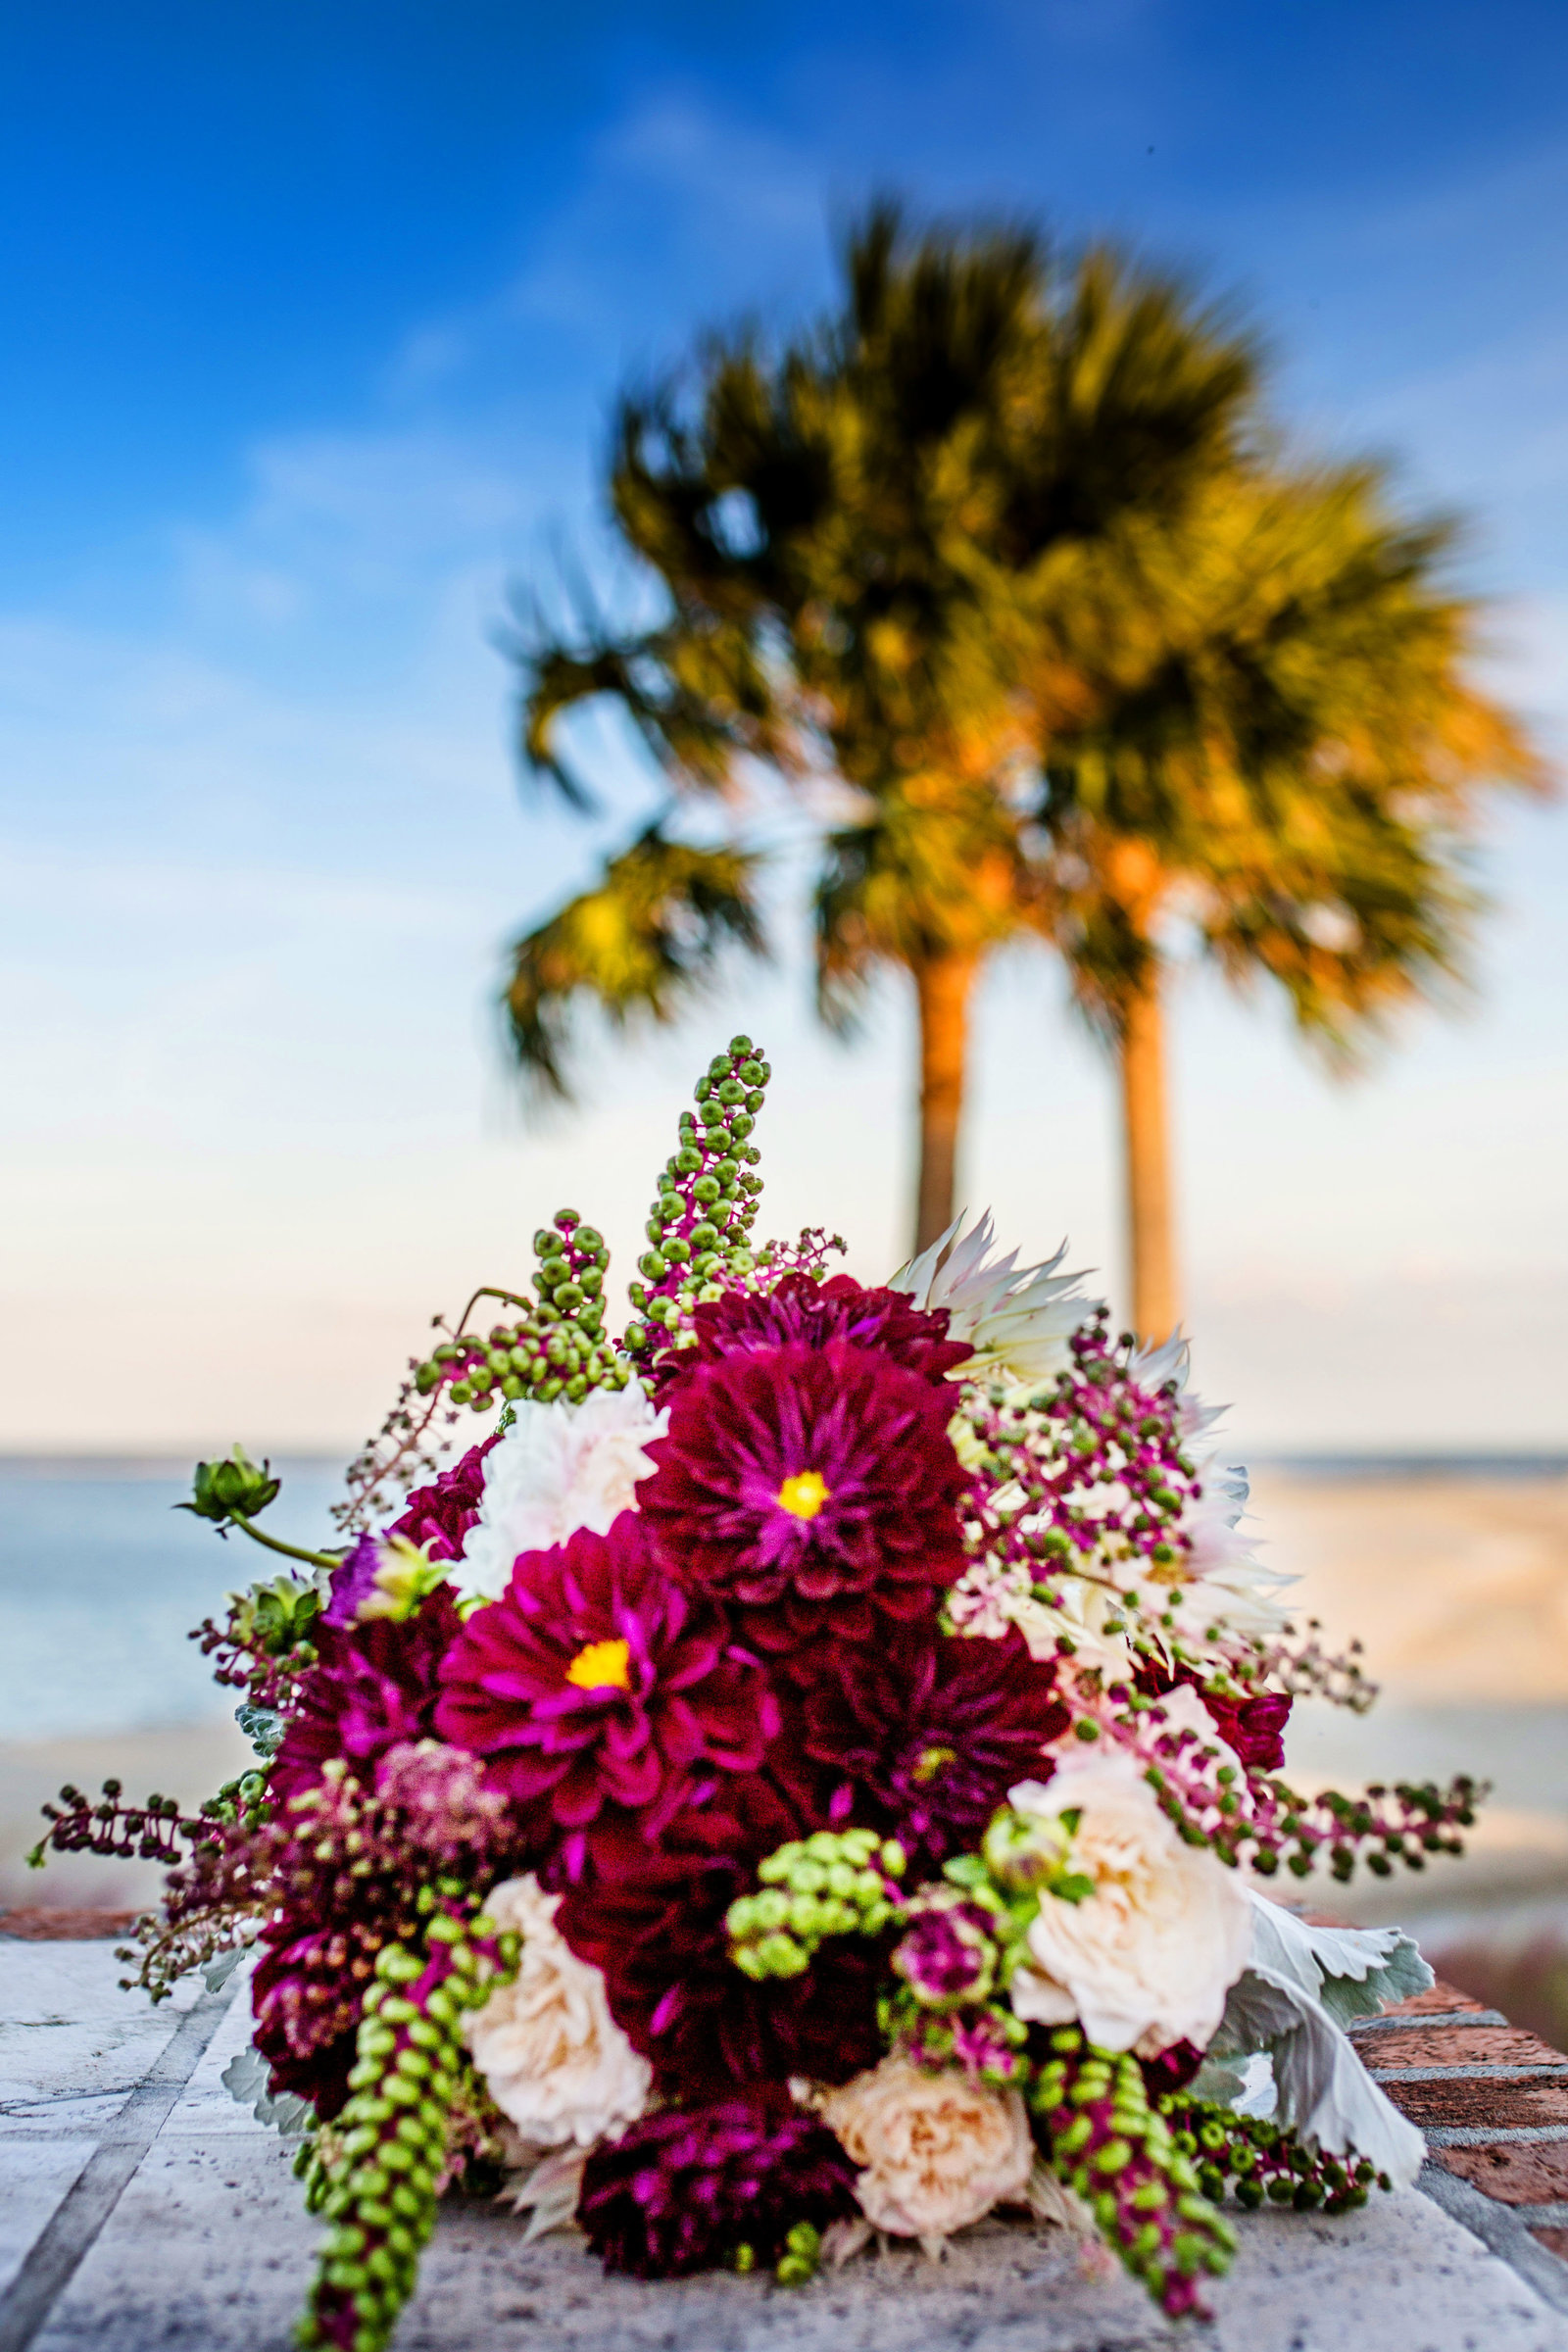 Palm Tree and flowers, Bobbi Brinkman Photography